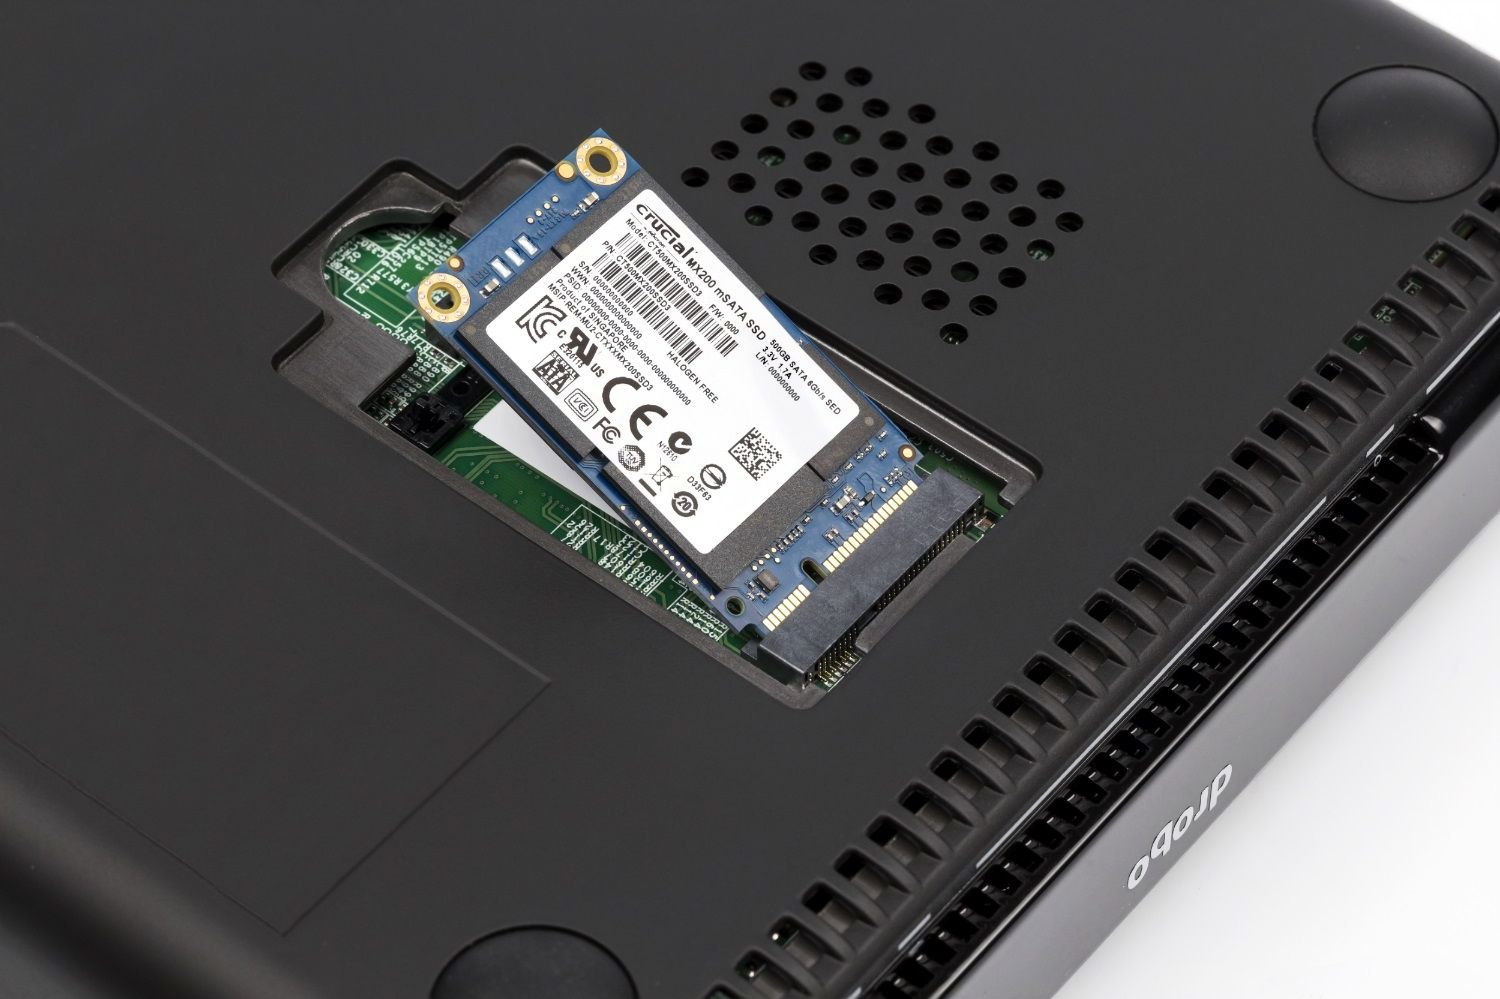 A Crucial MX200 MSATA SSD is being inserted in to a laptop